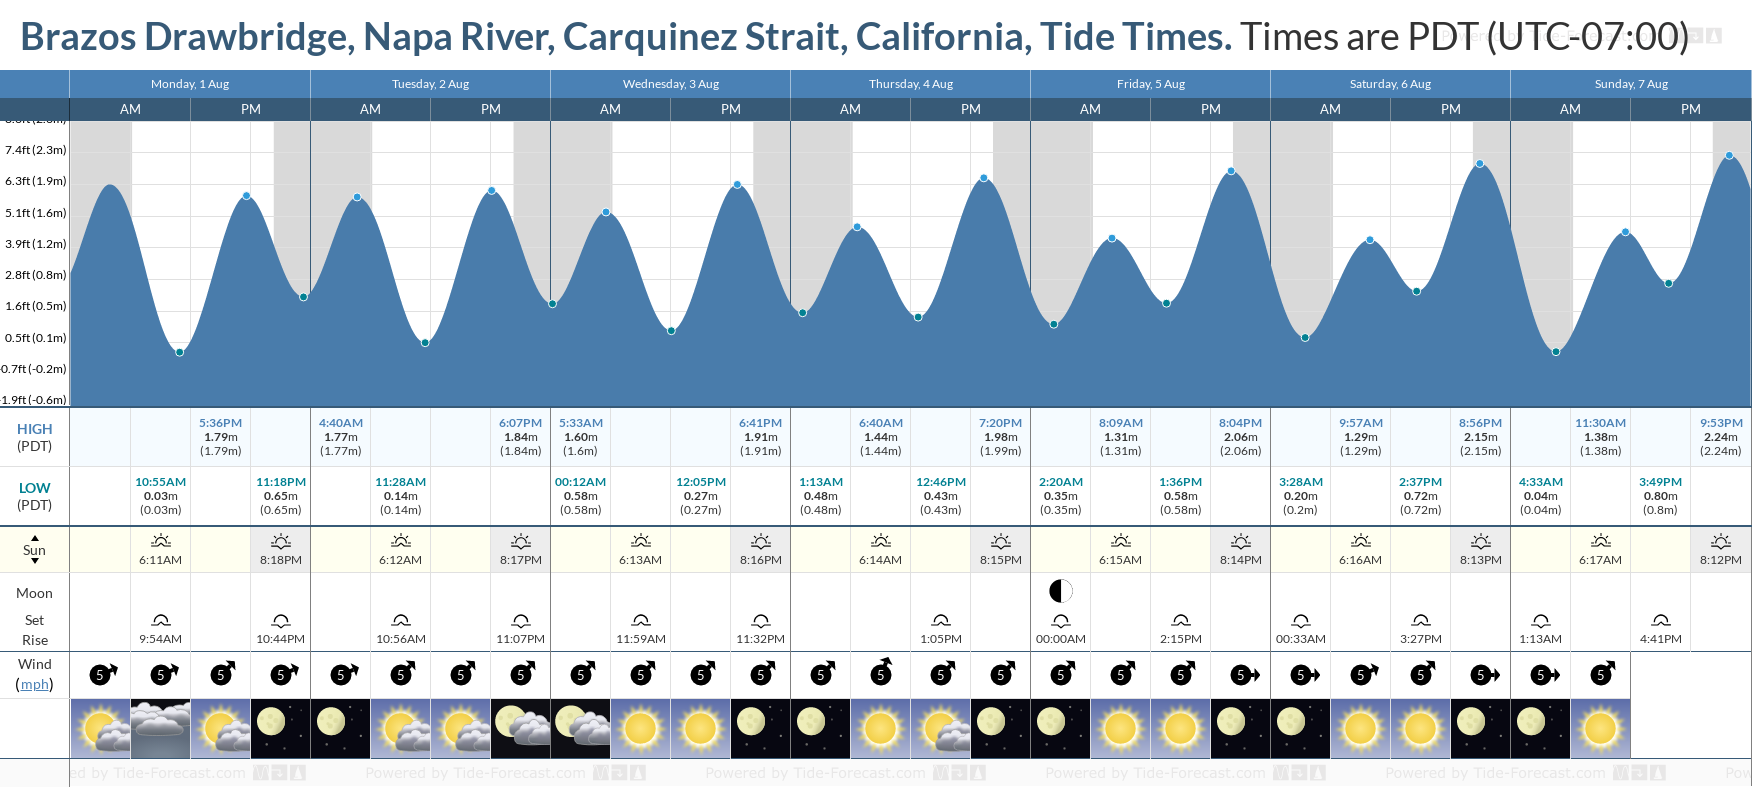 Brazos Drawbridge, Napa River, Carquinez Strait, California Tide Chart including high and low tide tide times for the next 7 days